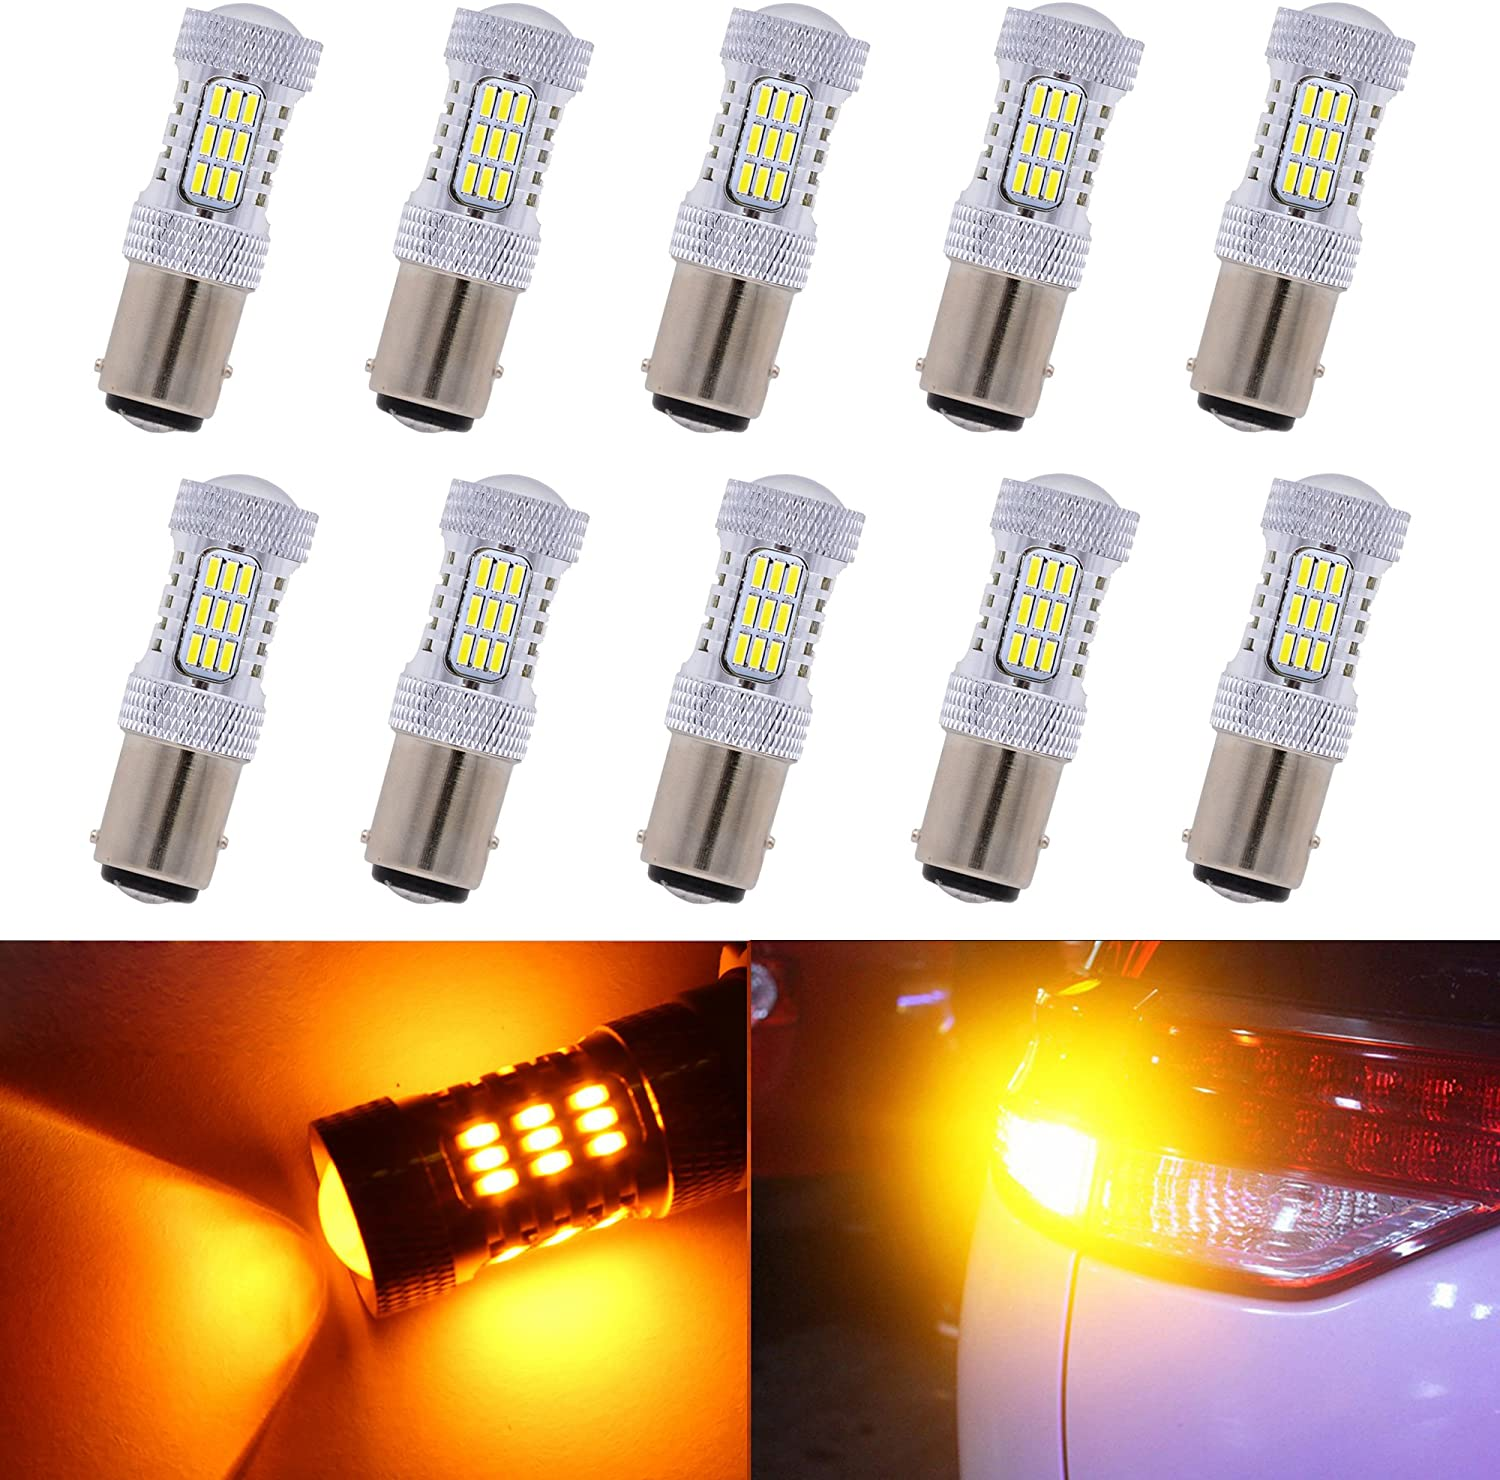 KaTur Brightness 900 Lumens 1157 7528 BAY15D 1016 1034 1196 Base 4014 45SMD Lens LED Replacement Light Bulbs Turn Signal Tail Rear Brake Lights Bulb Reverse Backup Light Bulbs 8000K Amber (Pack of 10)